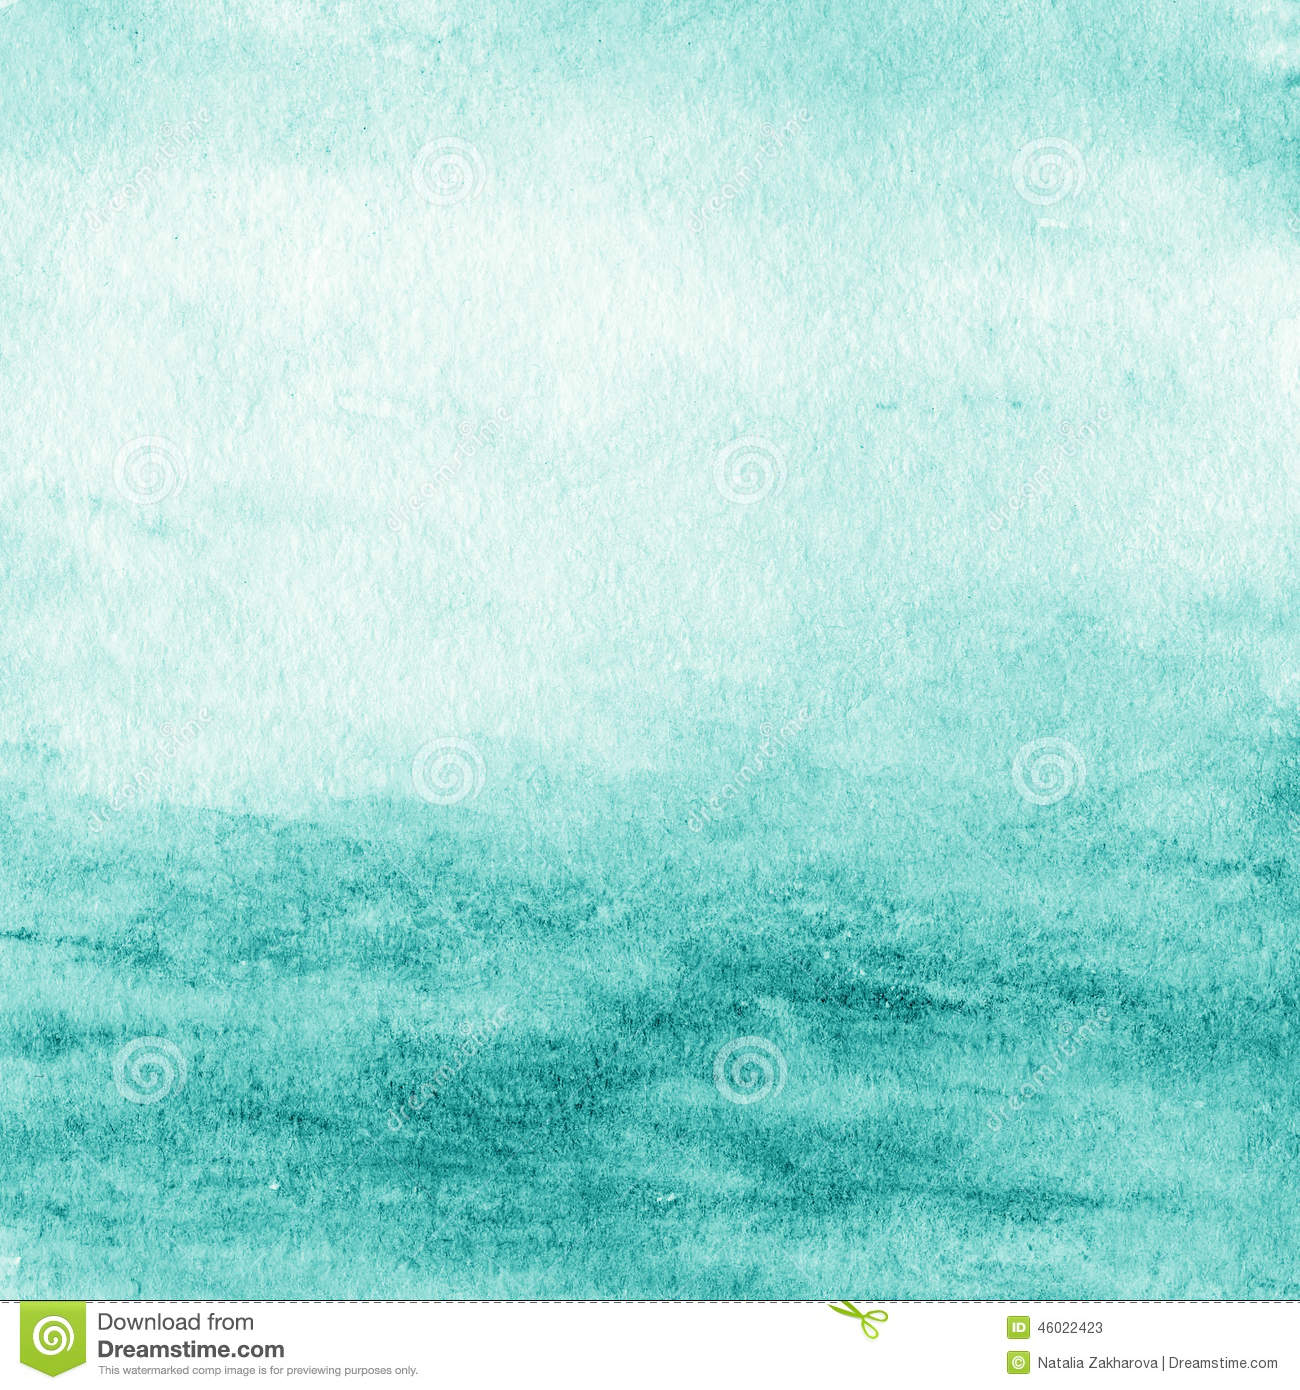 Abstract watercolor background. Blue Green Water color like sea